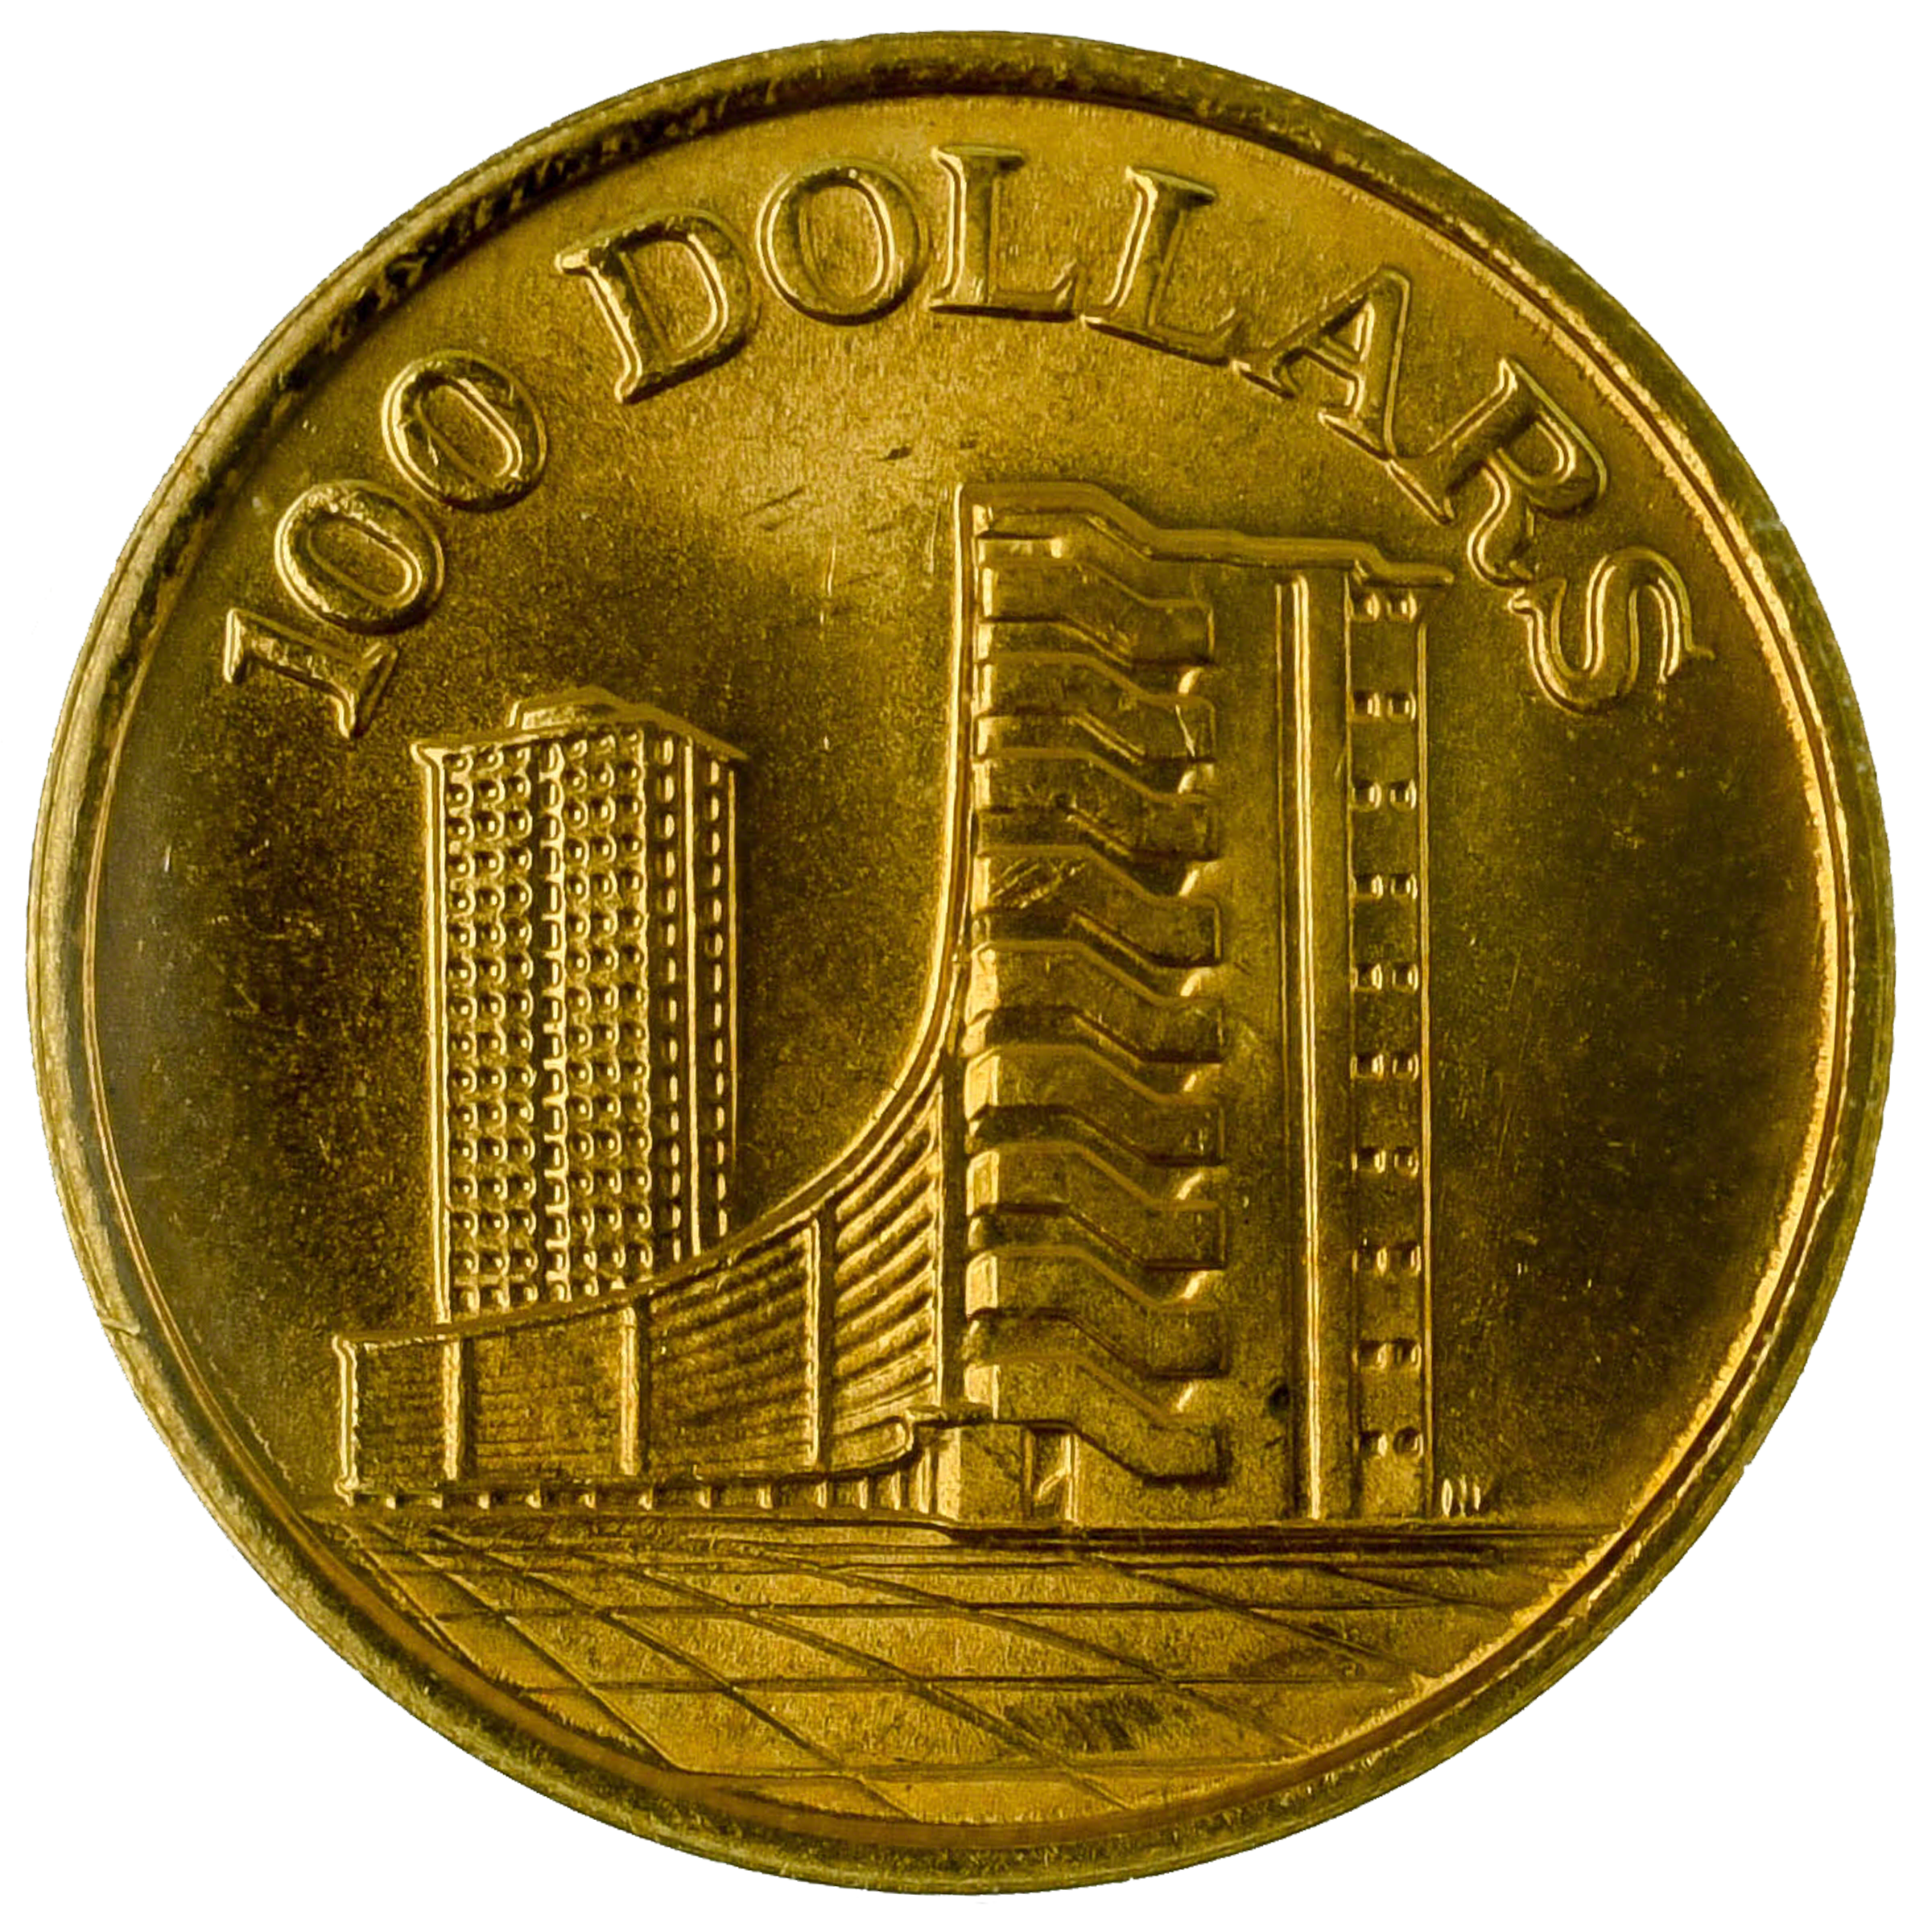 Singapore Mint 10th Anniversary Of The Republic 1965 1975 Hdb 5 44 G Gold